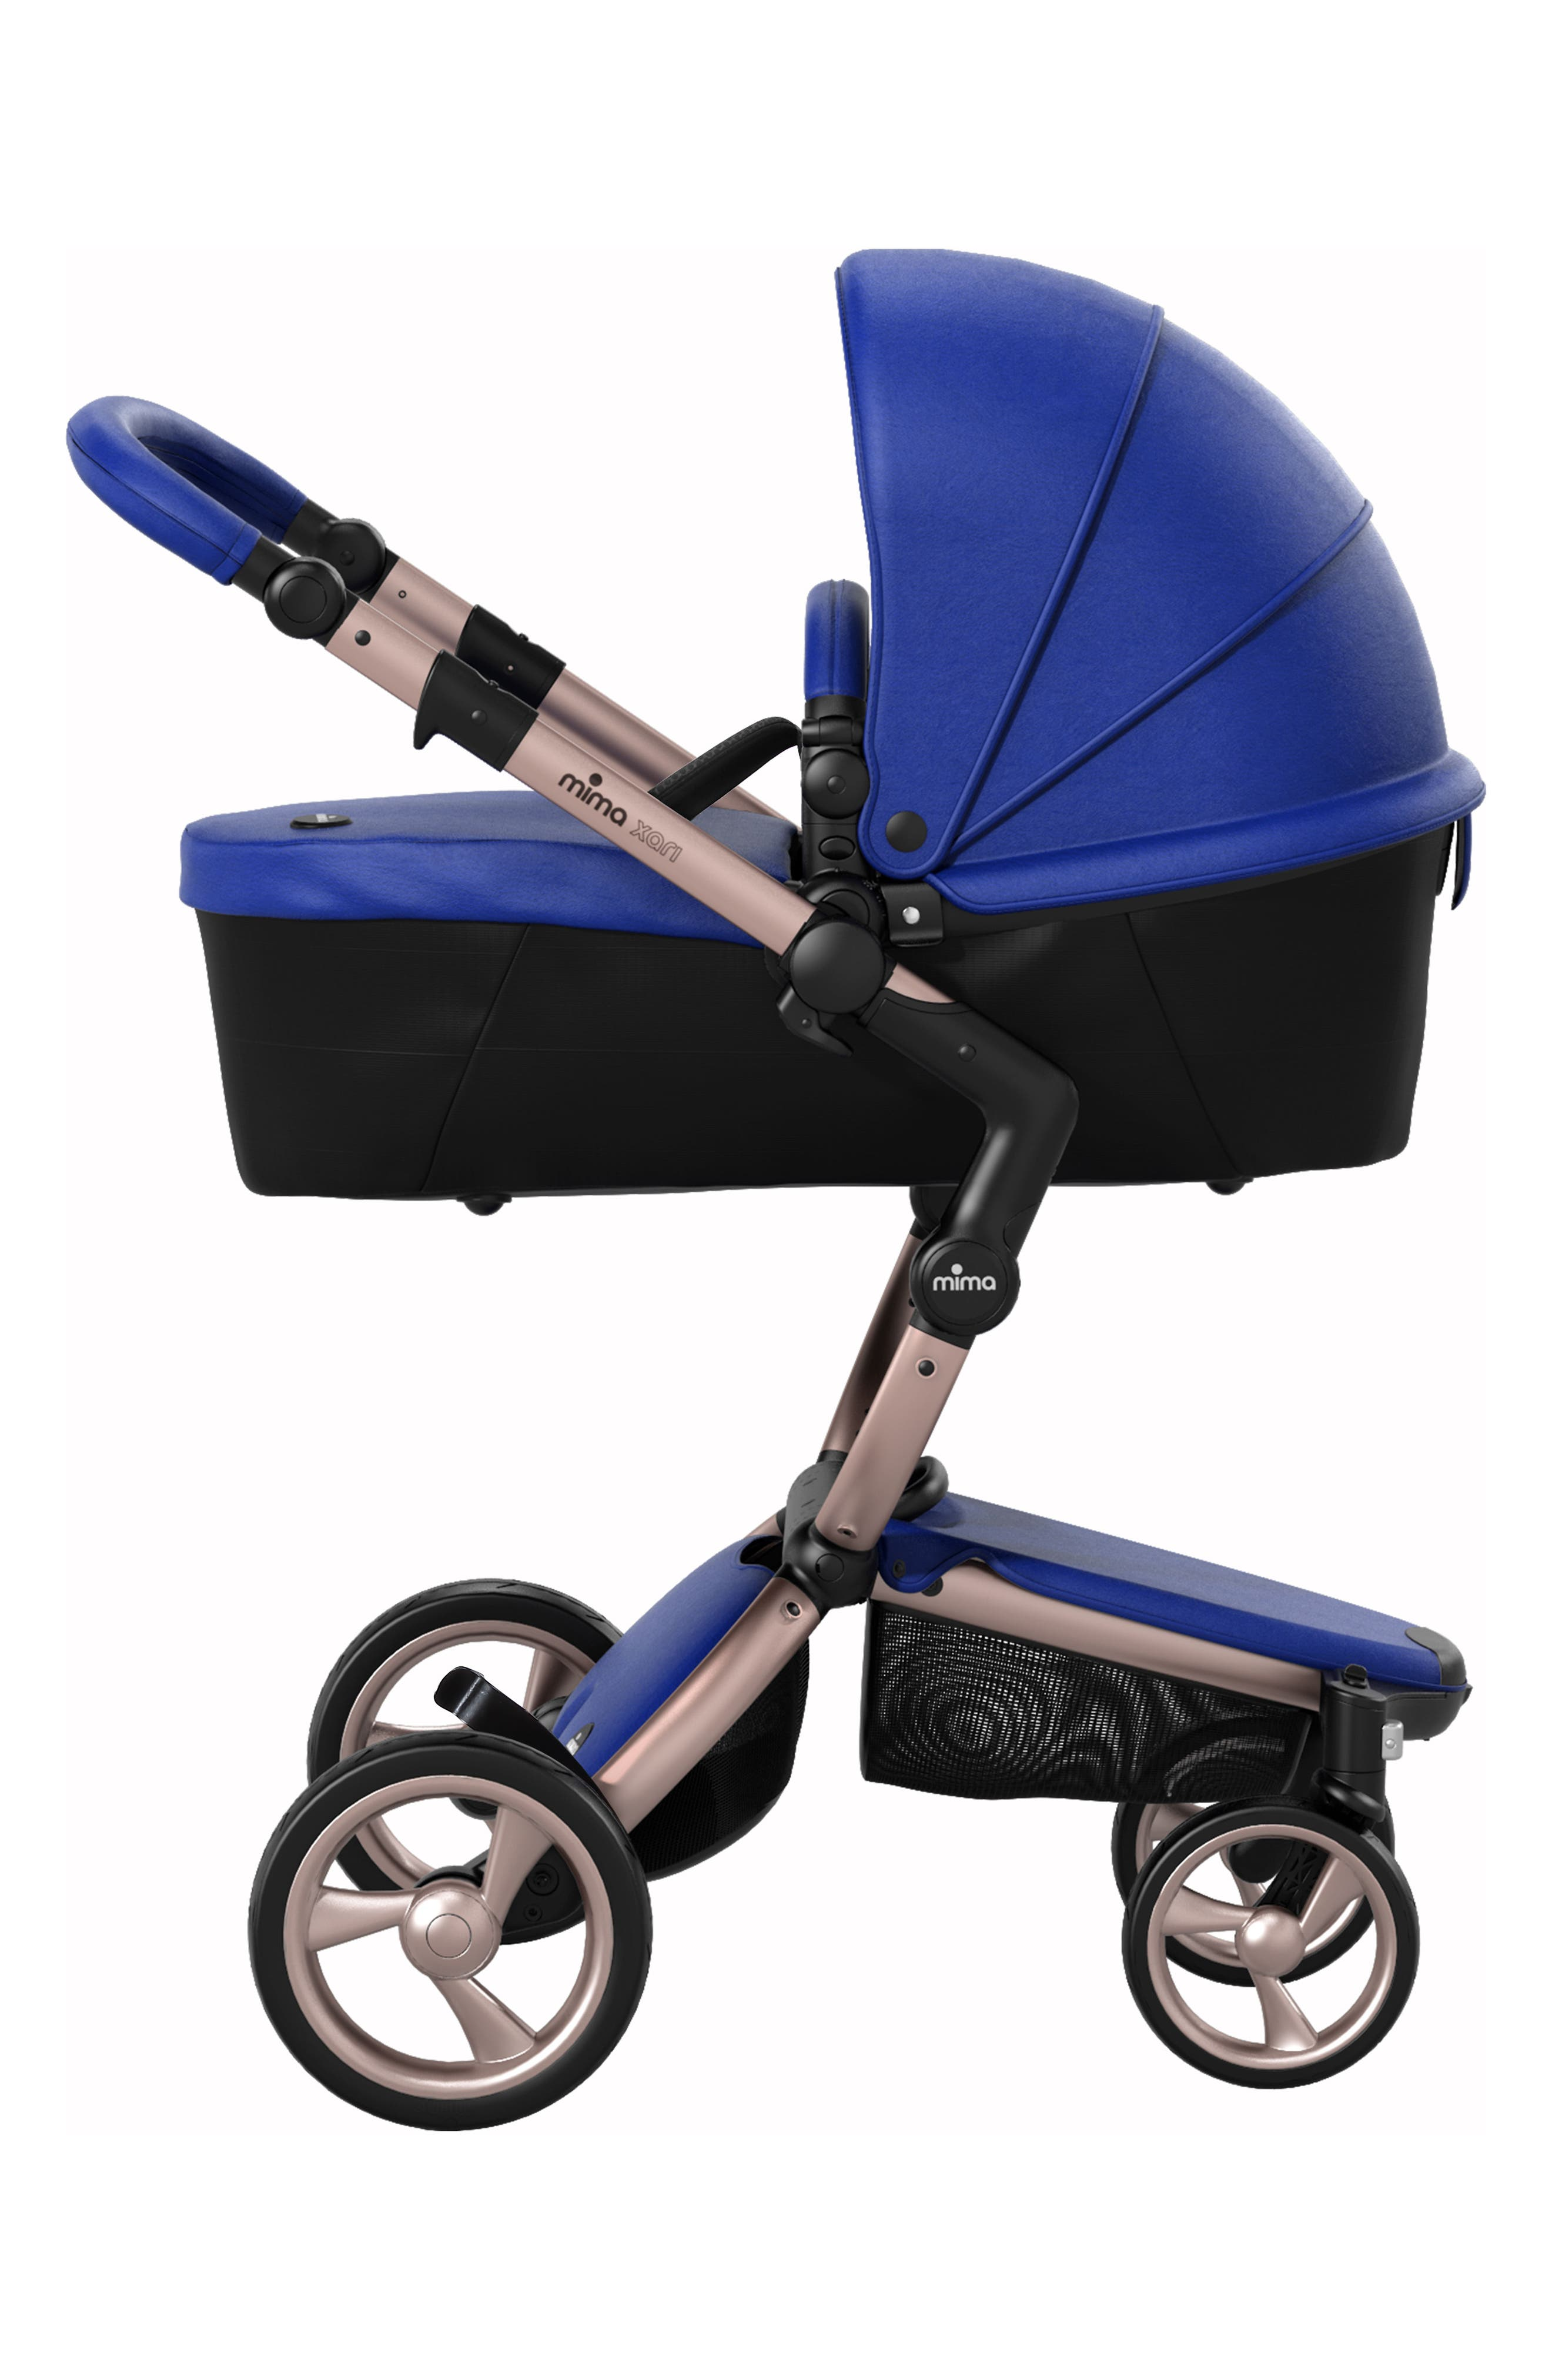 Xari Rose Gold Chassis Stroller with Reversible Reclining Seat & Carrycot,                             Alternate thumbnail 4, color,                             Royal Blue/ Black